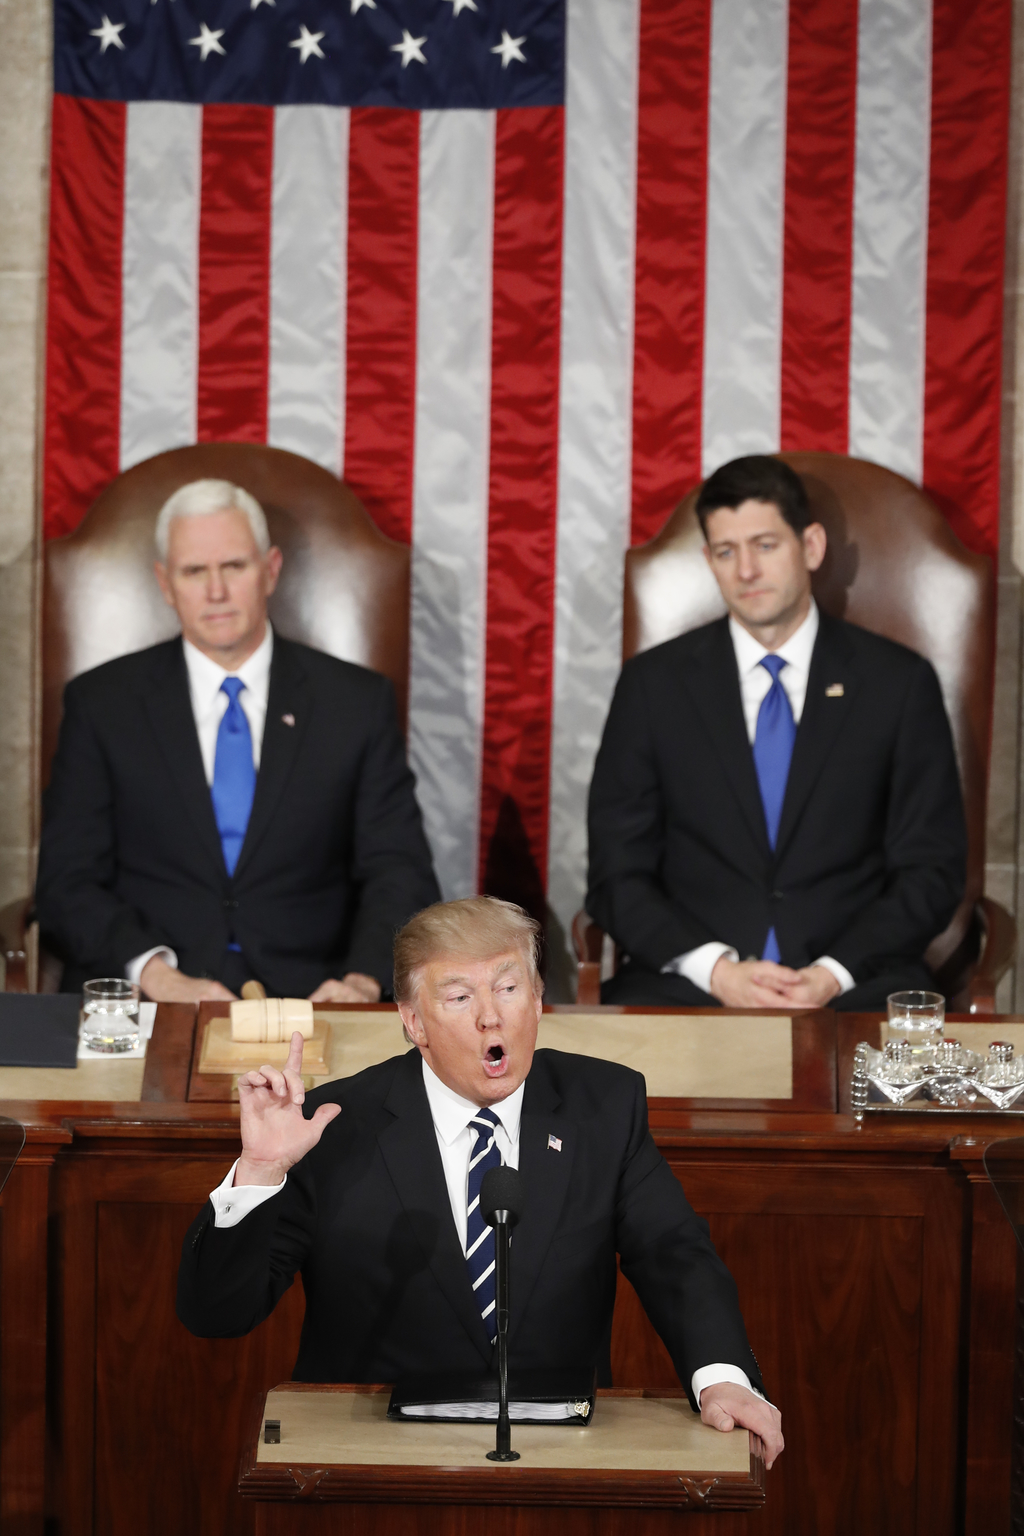 President Donald Trump, flanked by Vice President Mike Pence and House Speaker Paul Ryan of Wis. gestures as he addresses a joint sessi...